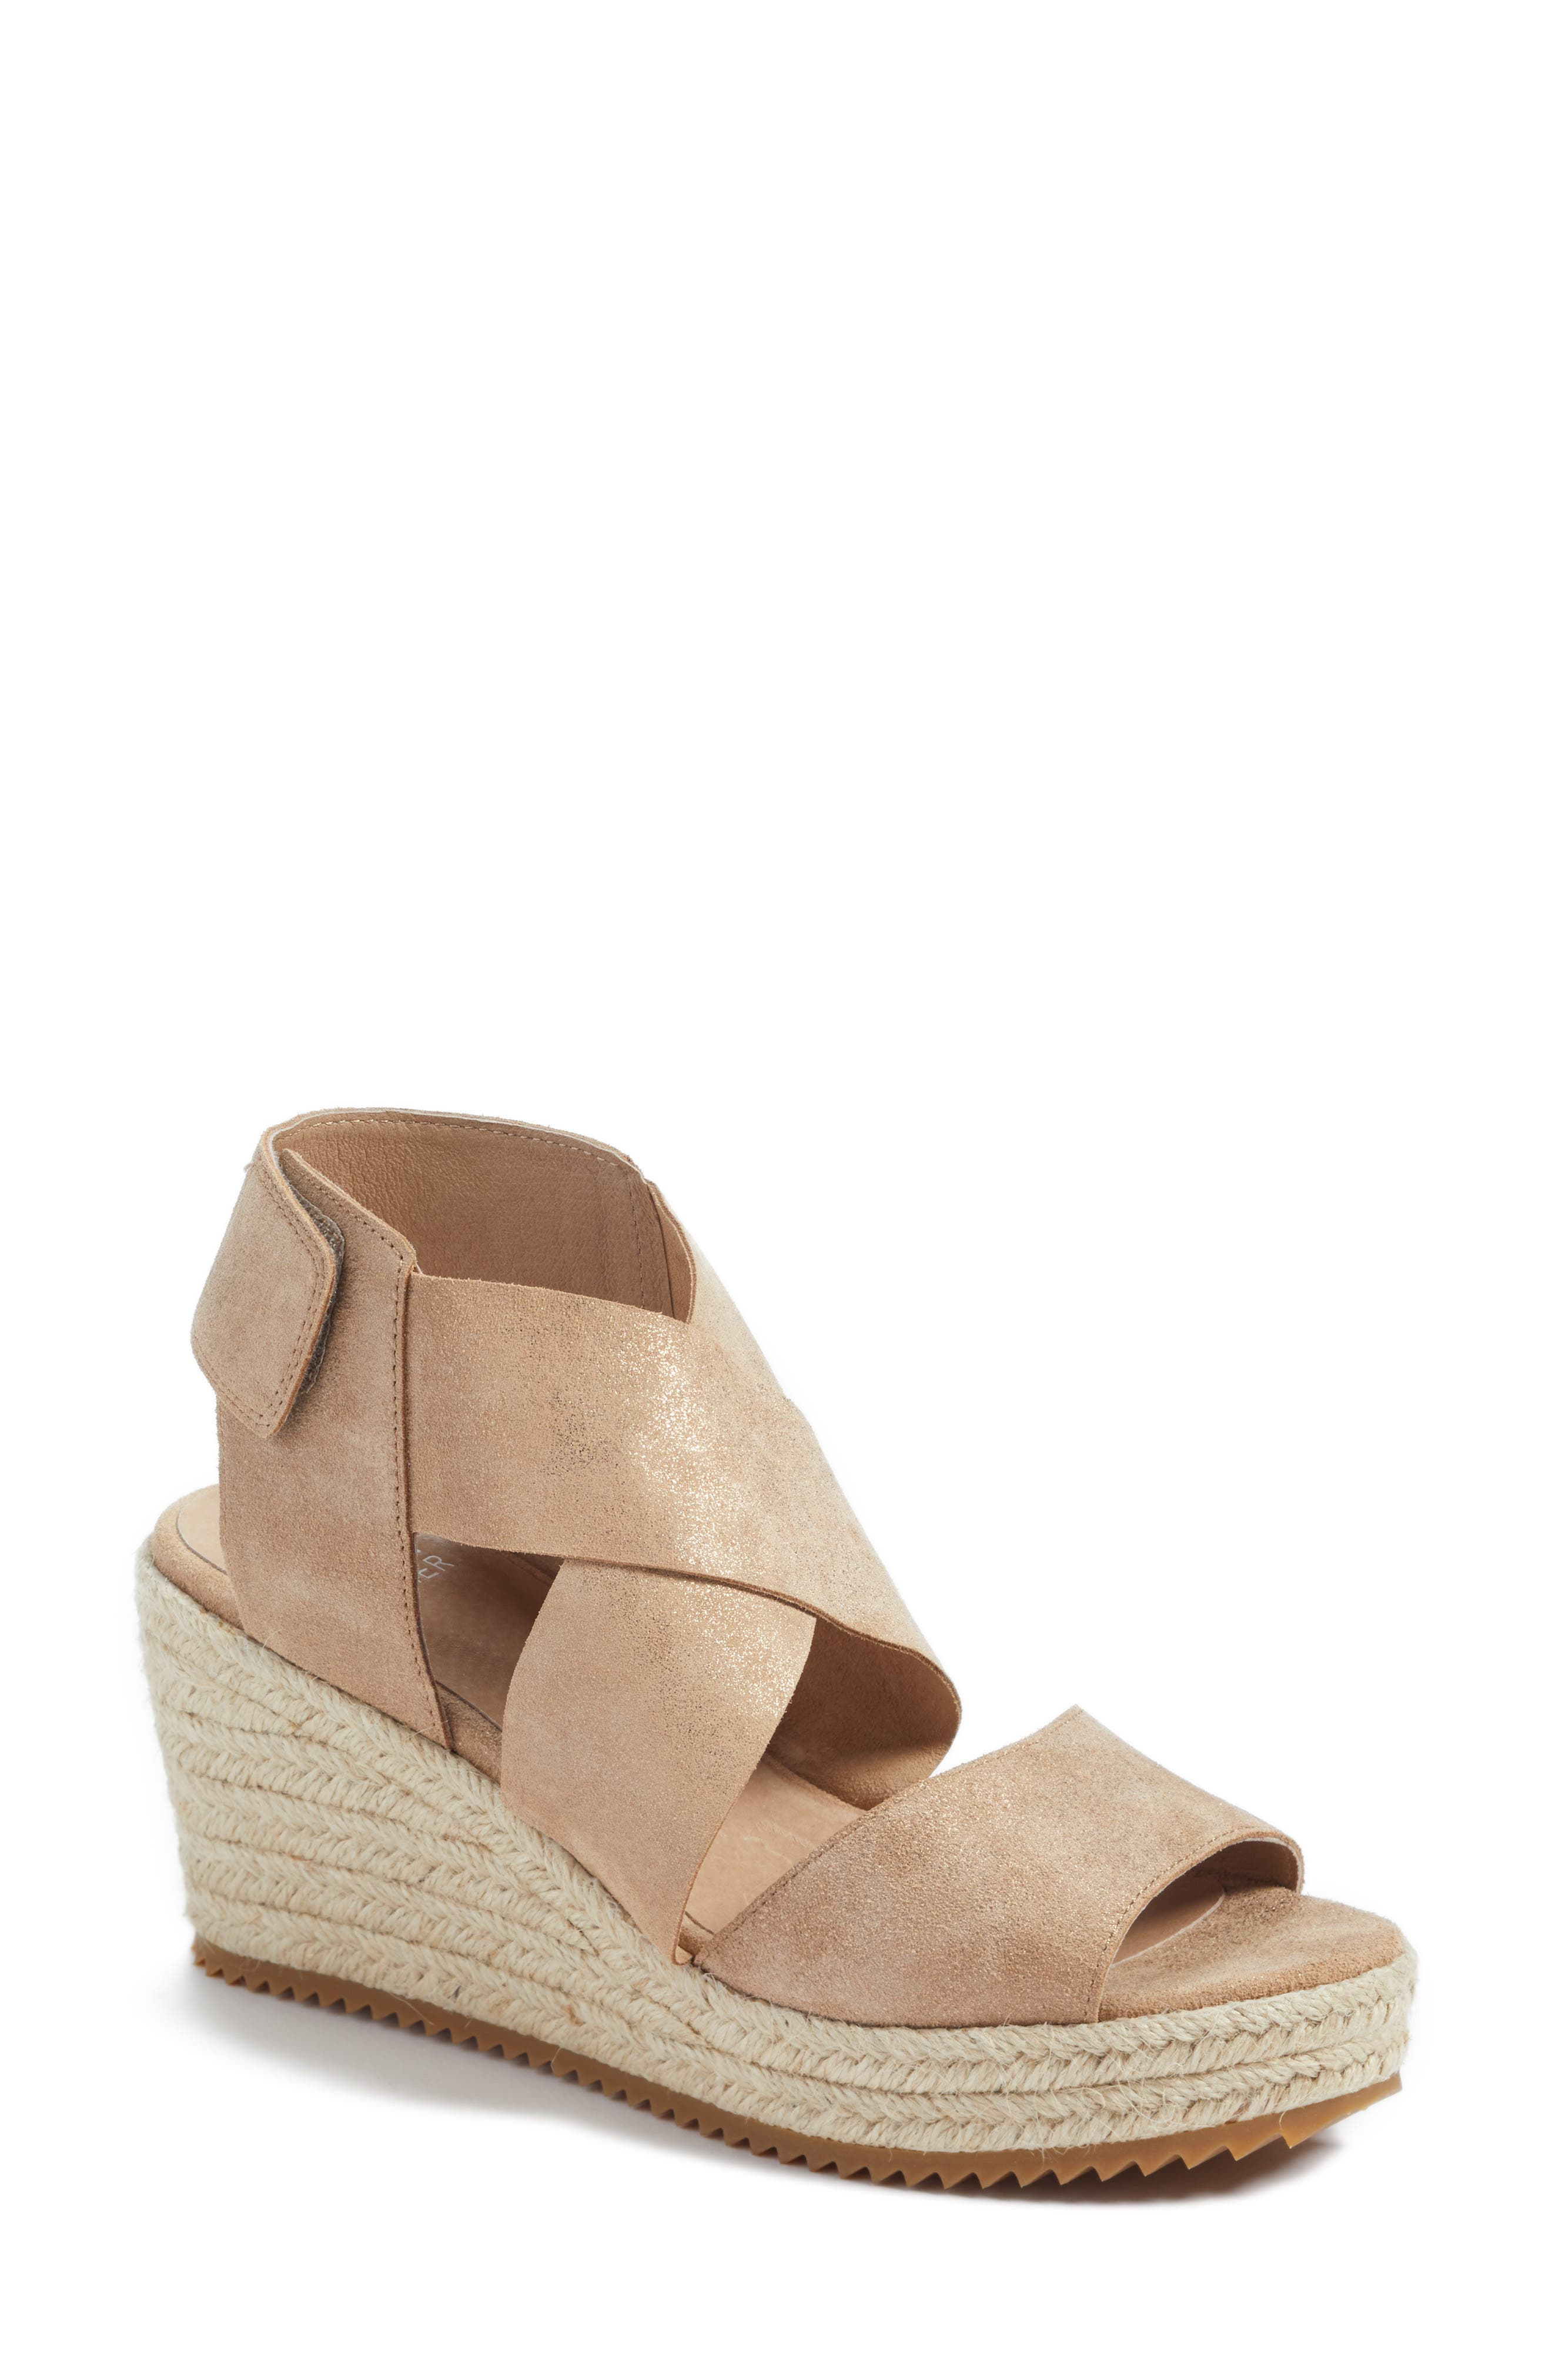 'Willow' Espadrille Wedge Sandal,                             Main thumbnail 1, color,                             LIGHT GOLD STARRY LEATHER